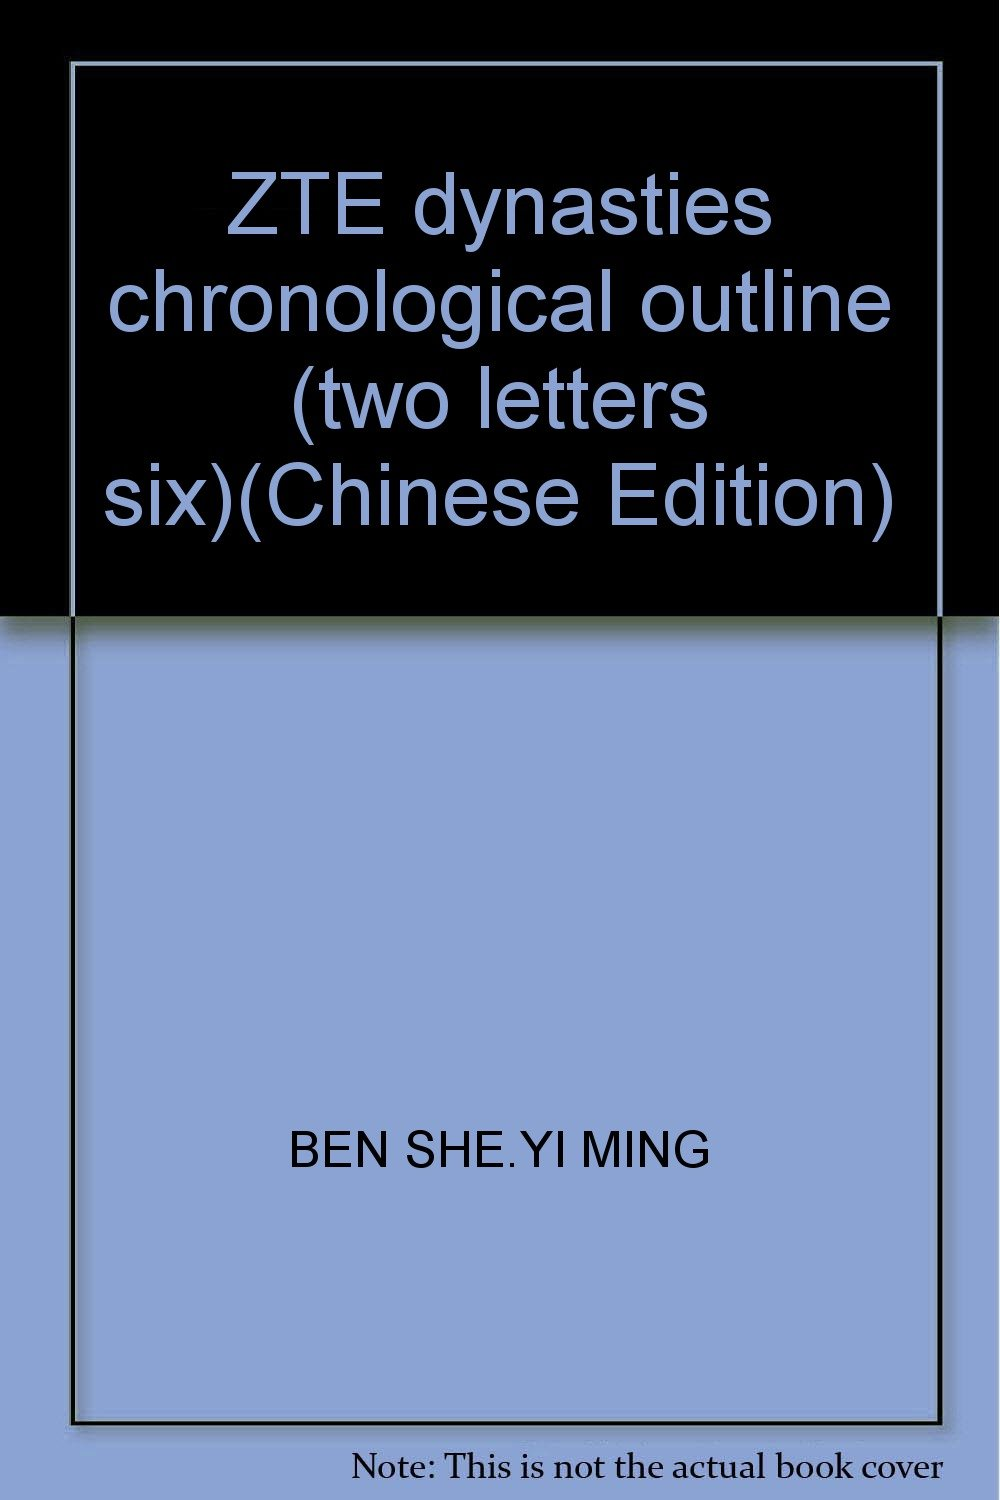 Zte Dynasties Chronological Outline Two Letters Six Chinese